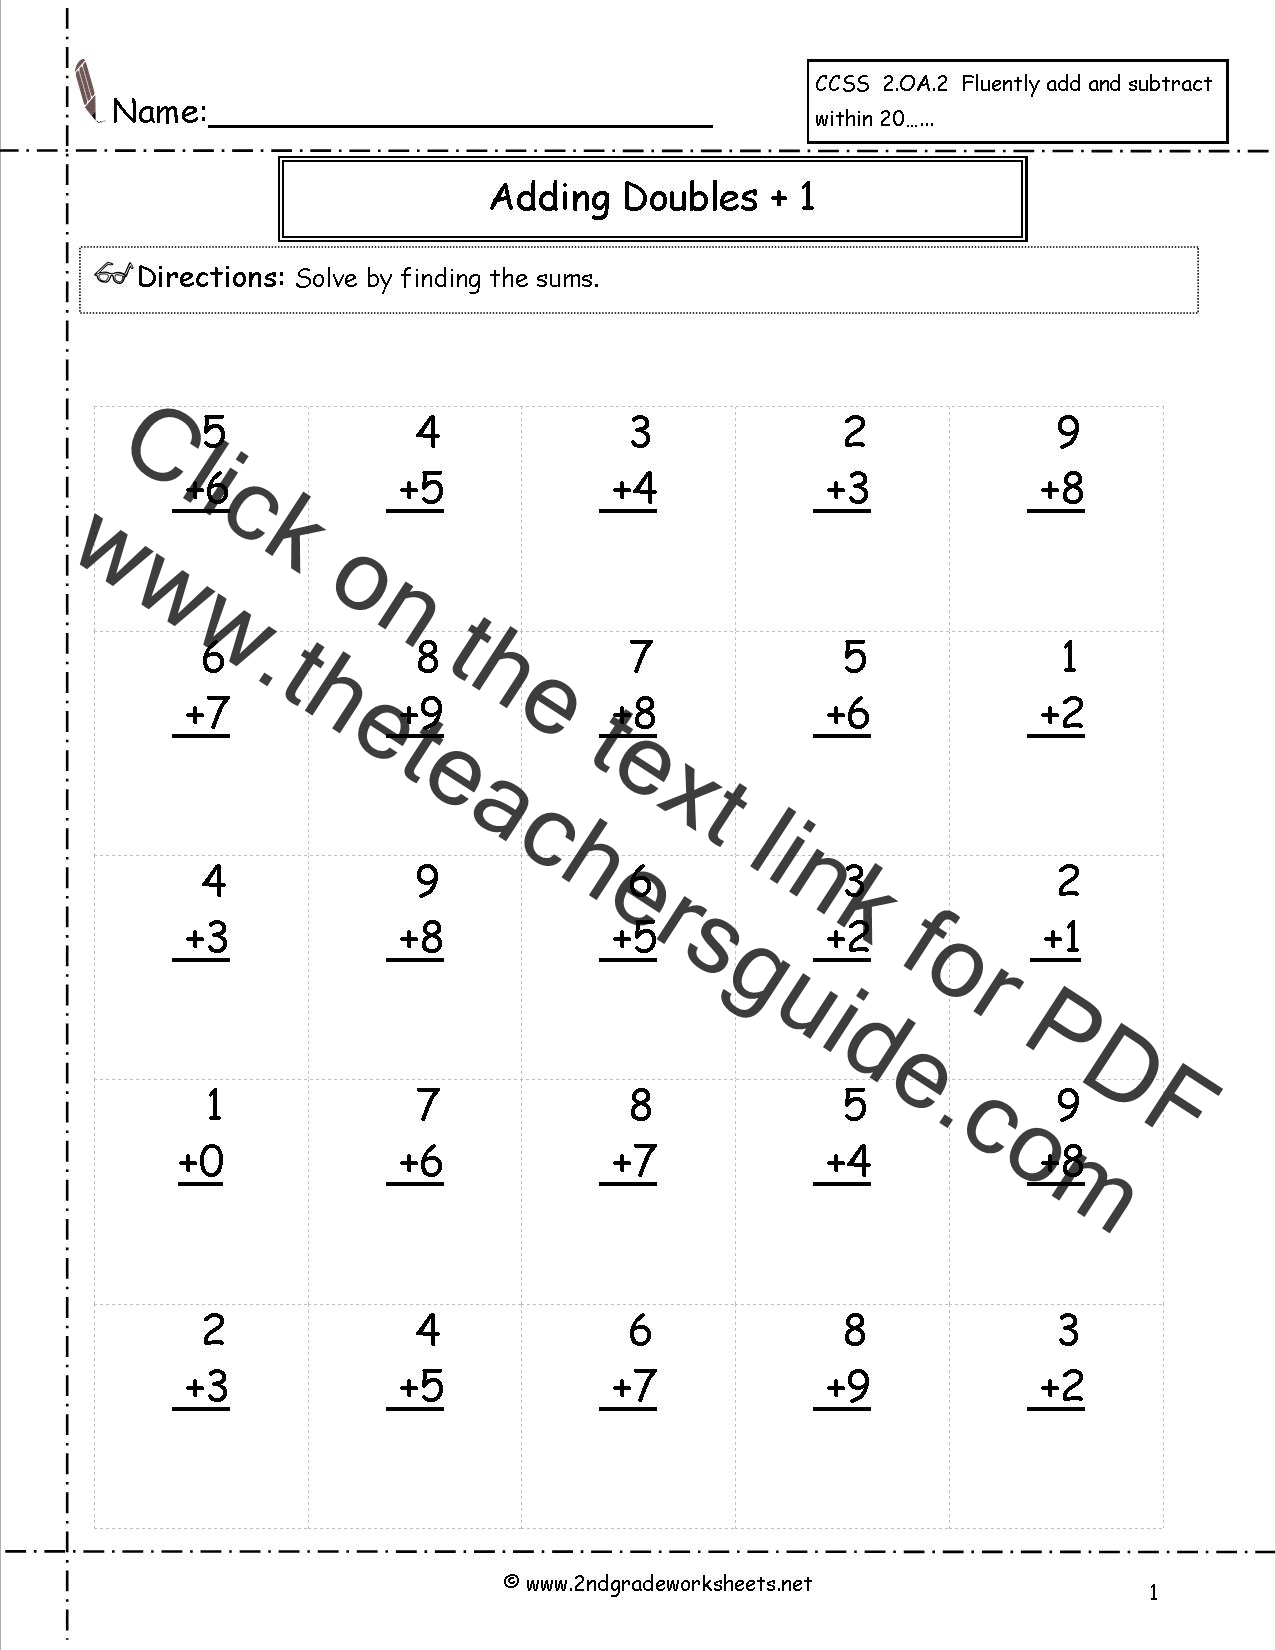 Worksheet Math Facts For First Grade Mikyu Free Worksheet – First Grade Math Facts Worksheets